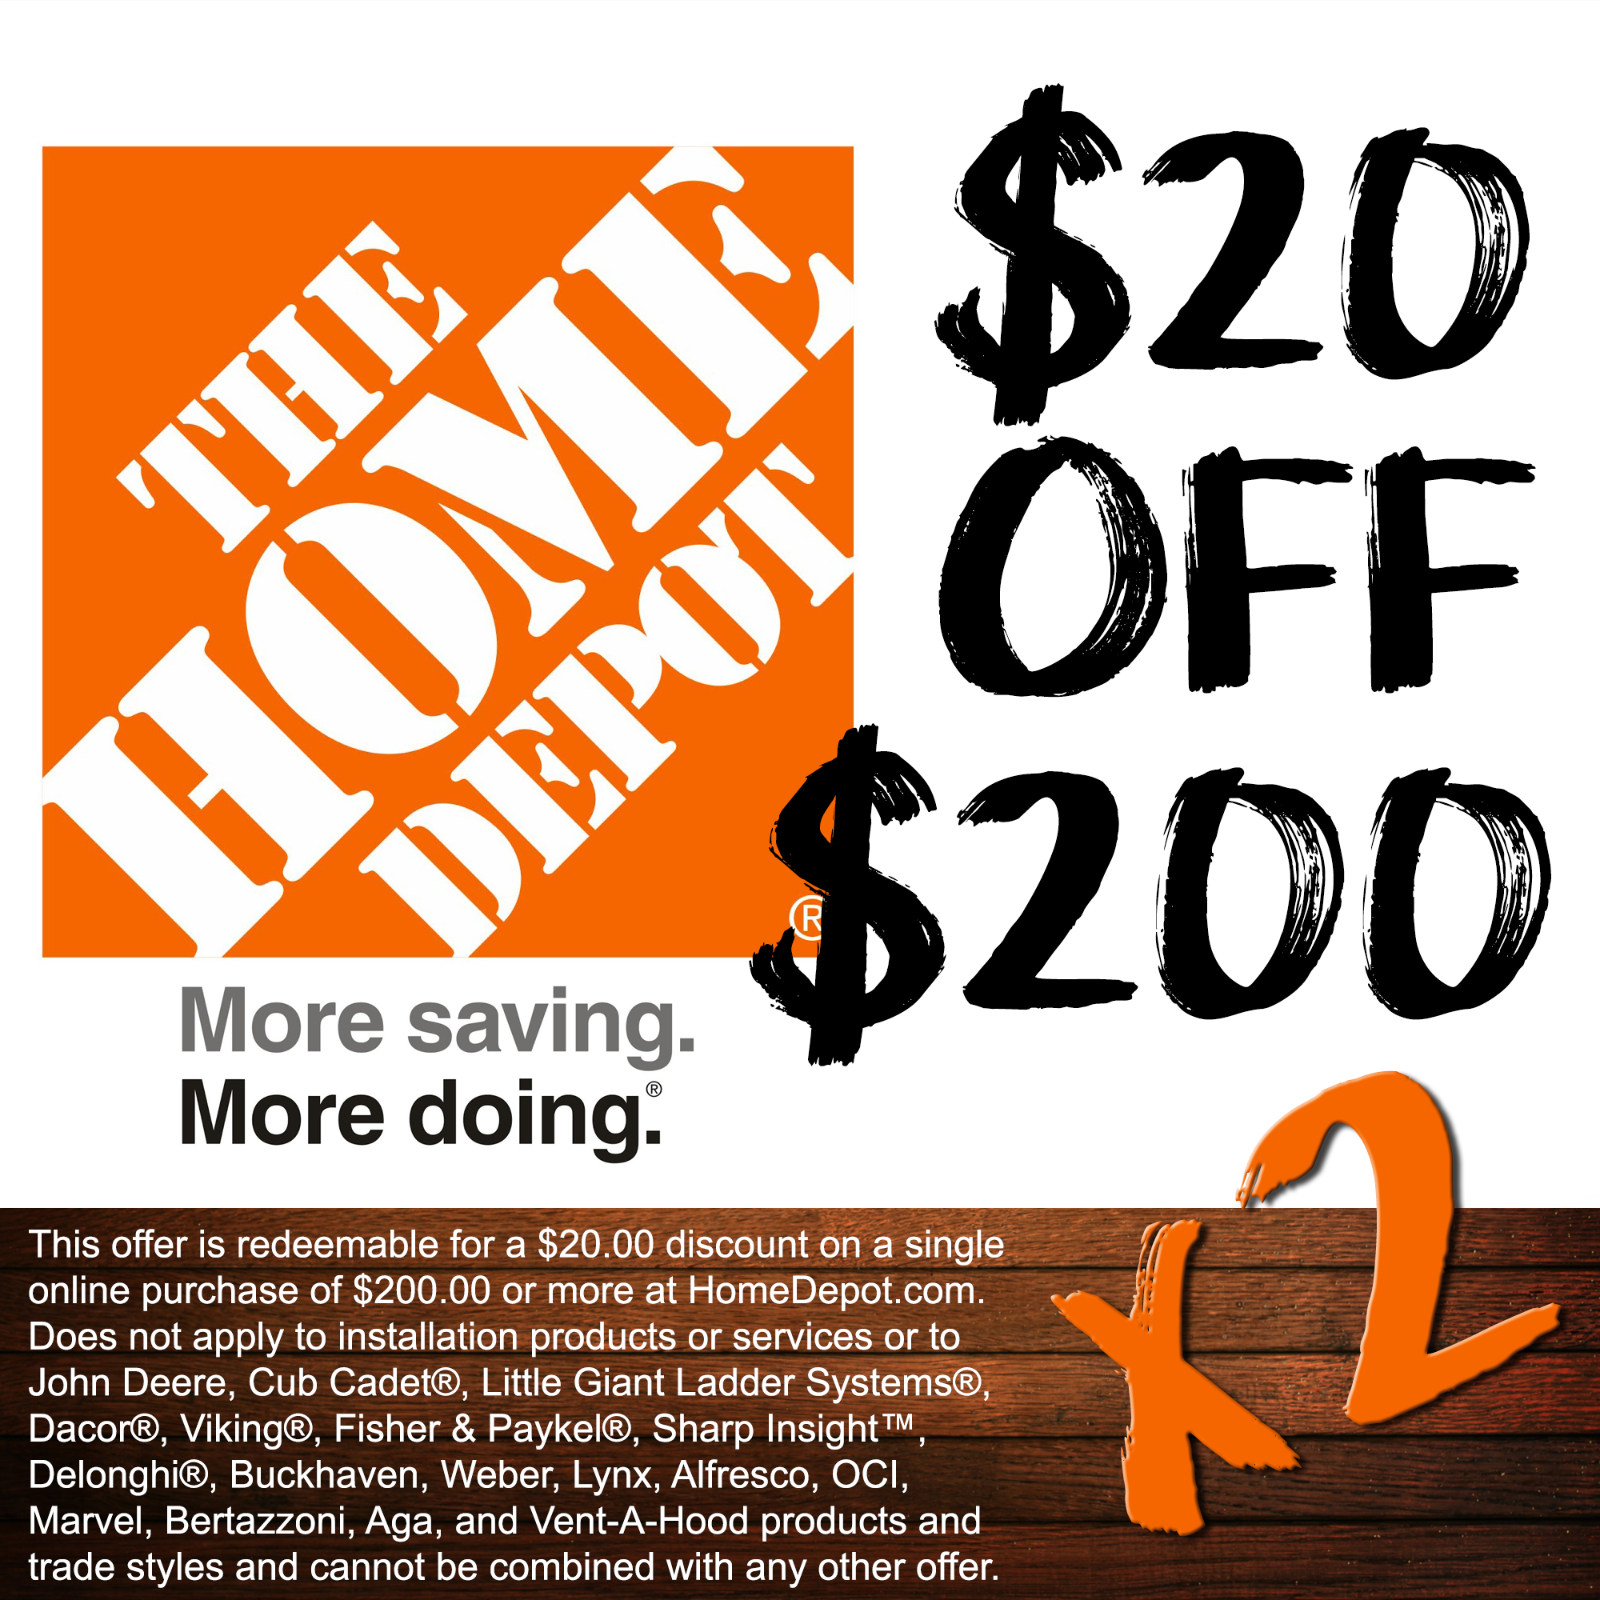 TWO 2 Home Depot 20 Off 200 ONLINE Coupons 40 In Savings  - $4.99